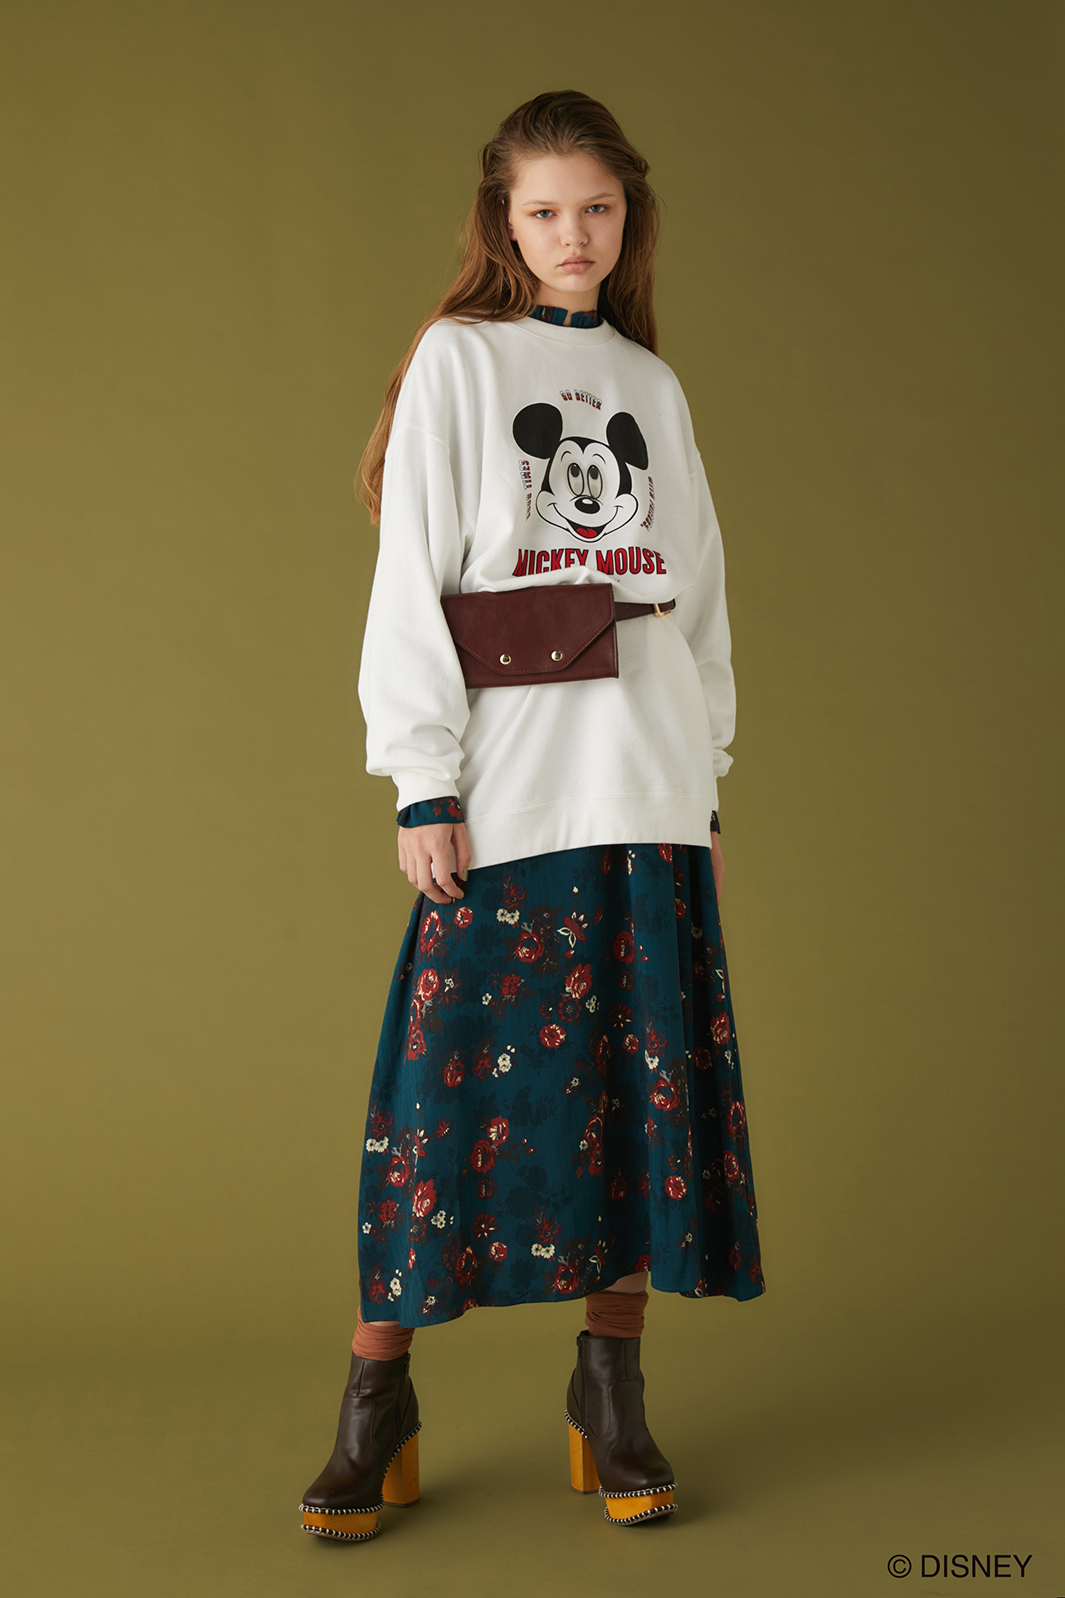 「Disney SERIES CREATED by MOUSSY」(提供写真)